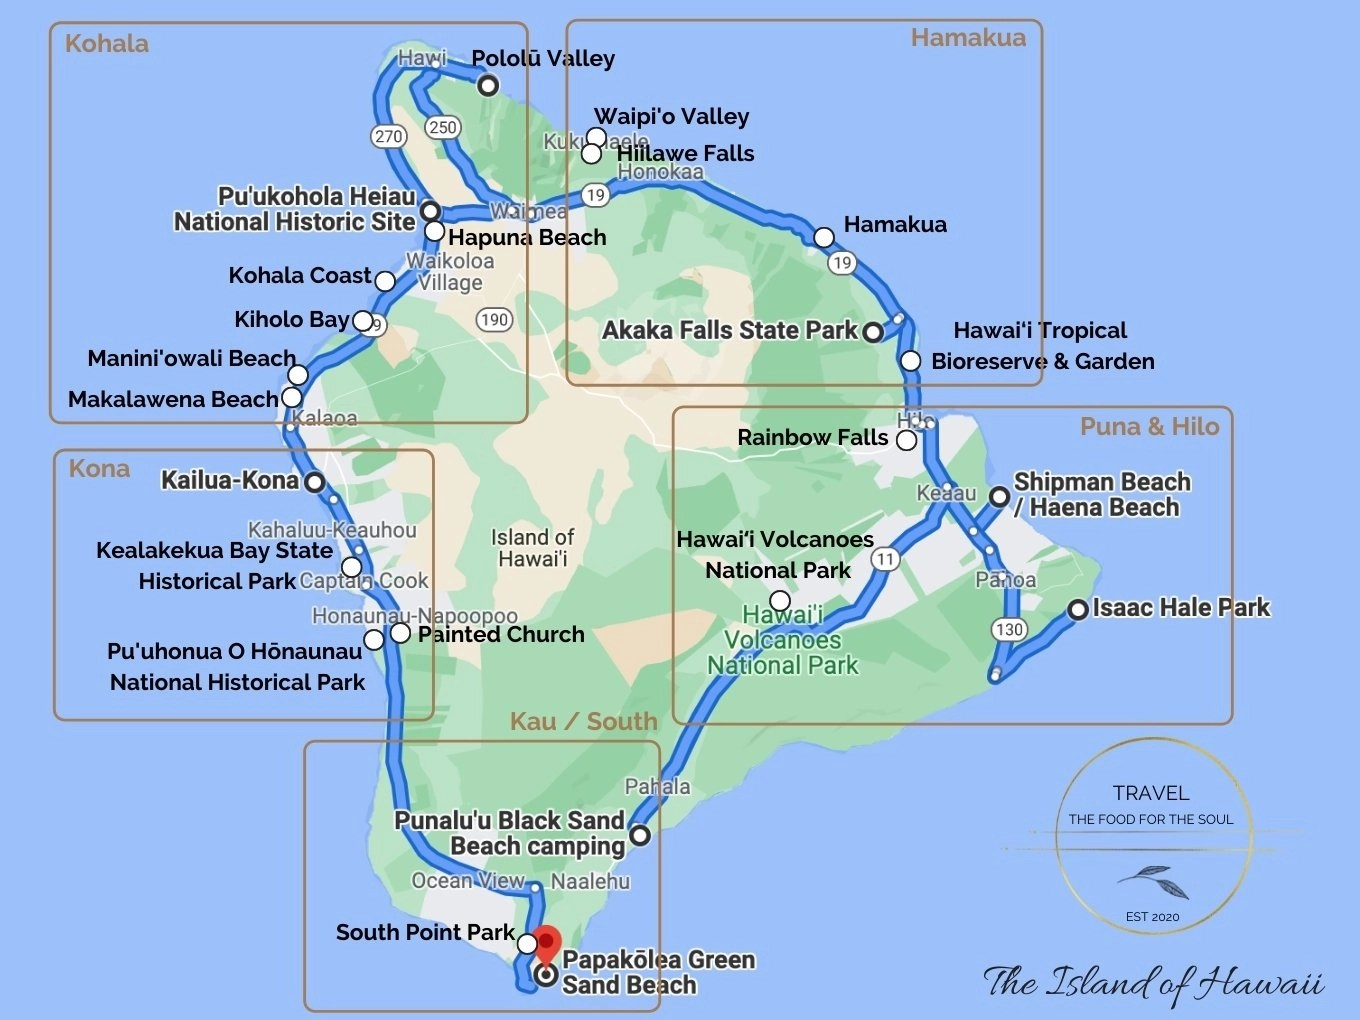 Things To Do On The Island of Hawaii